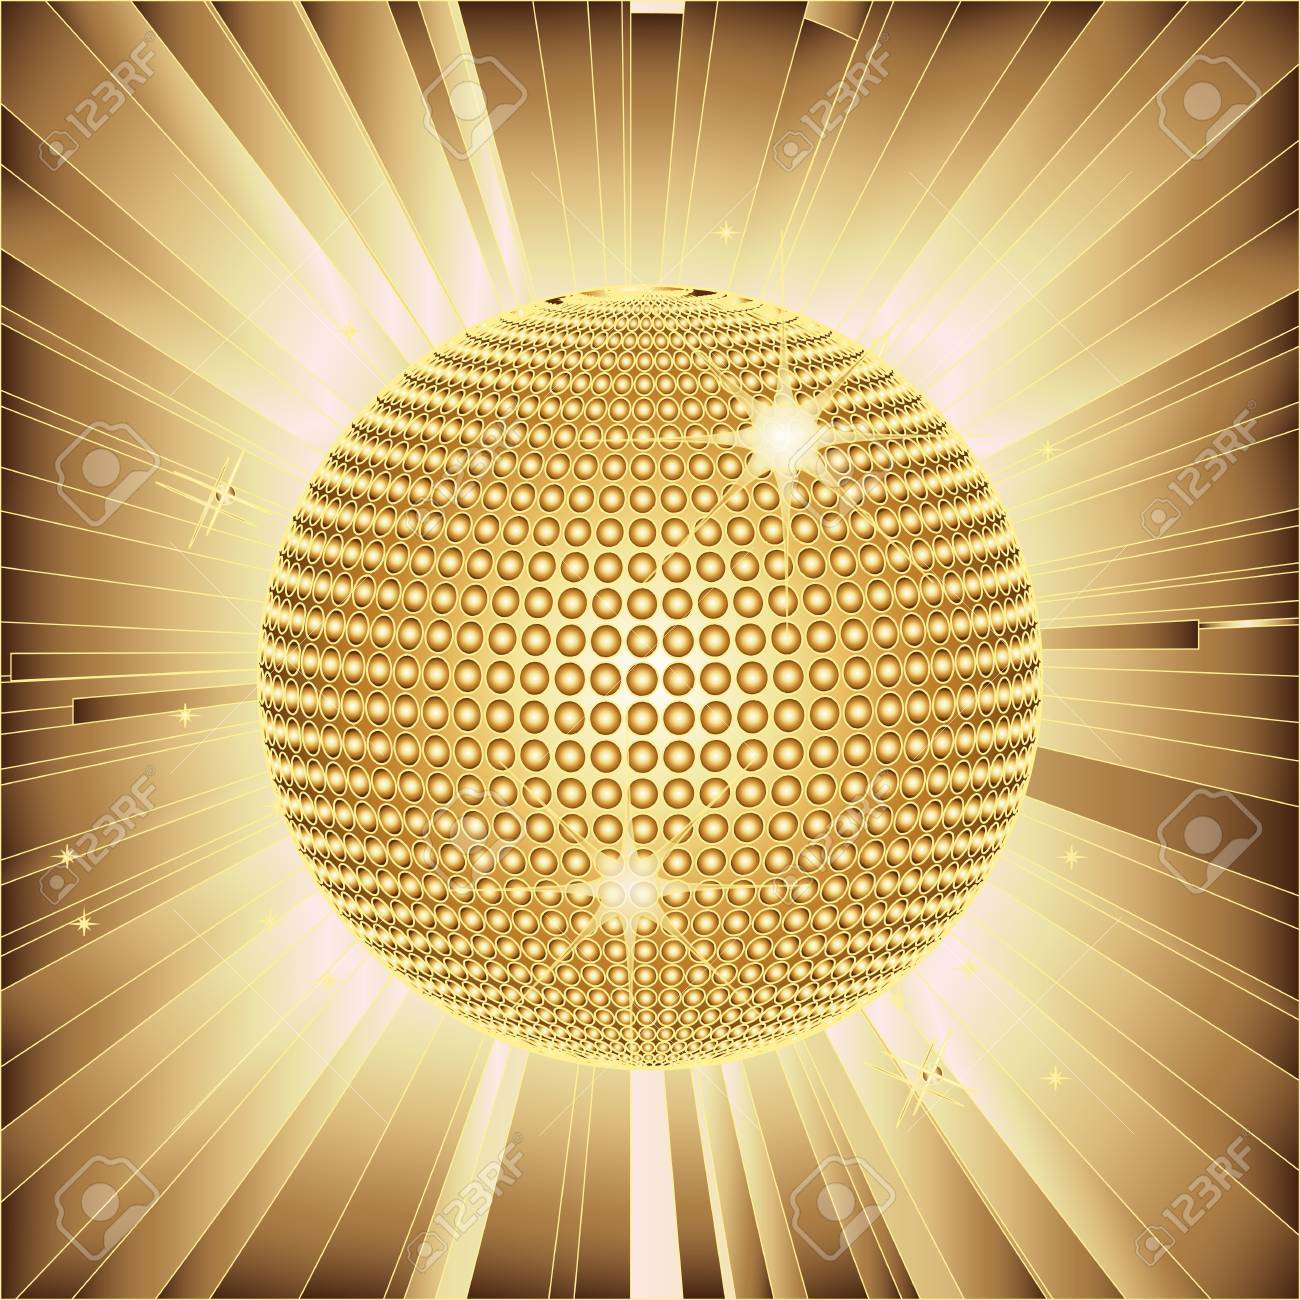 Gold Sparkles Clipart Sparkling Gold Disco Ball And